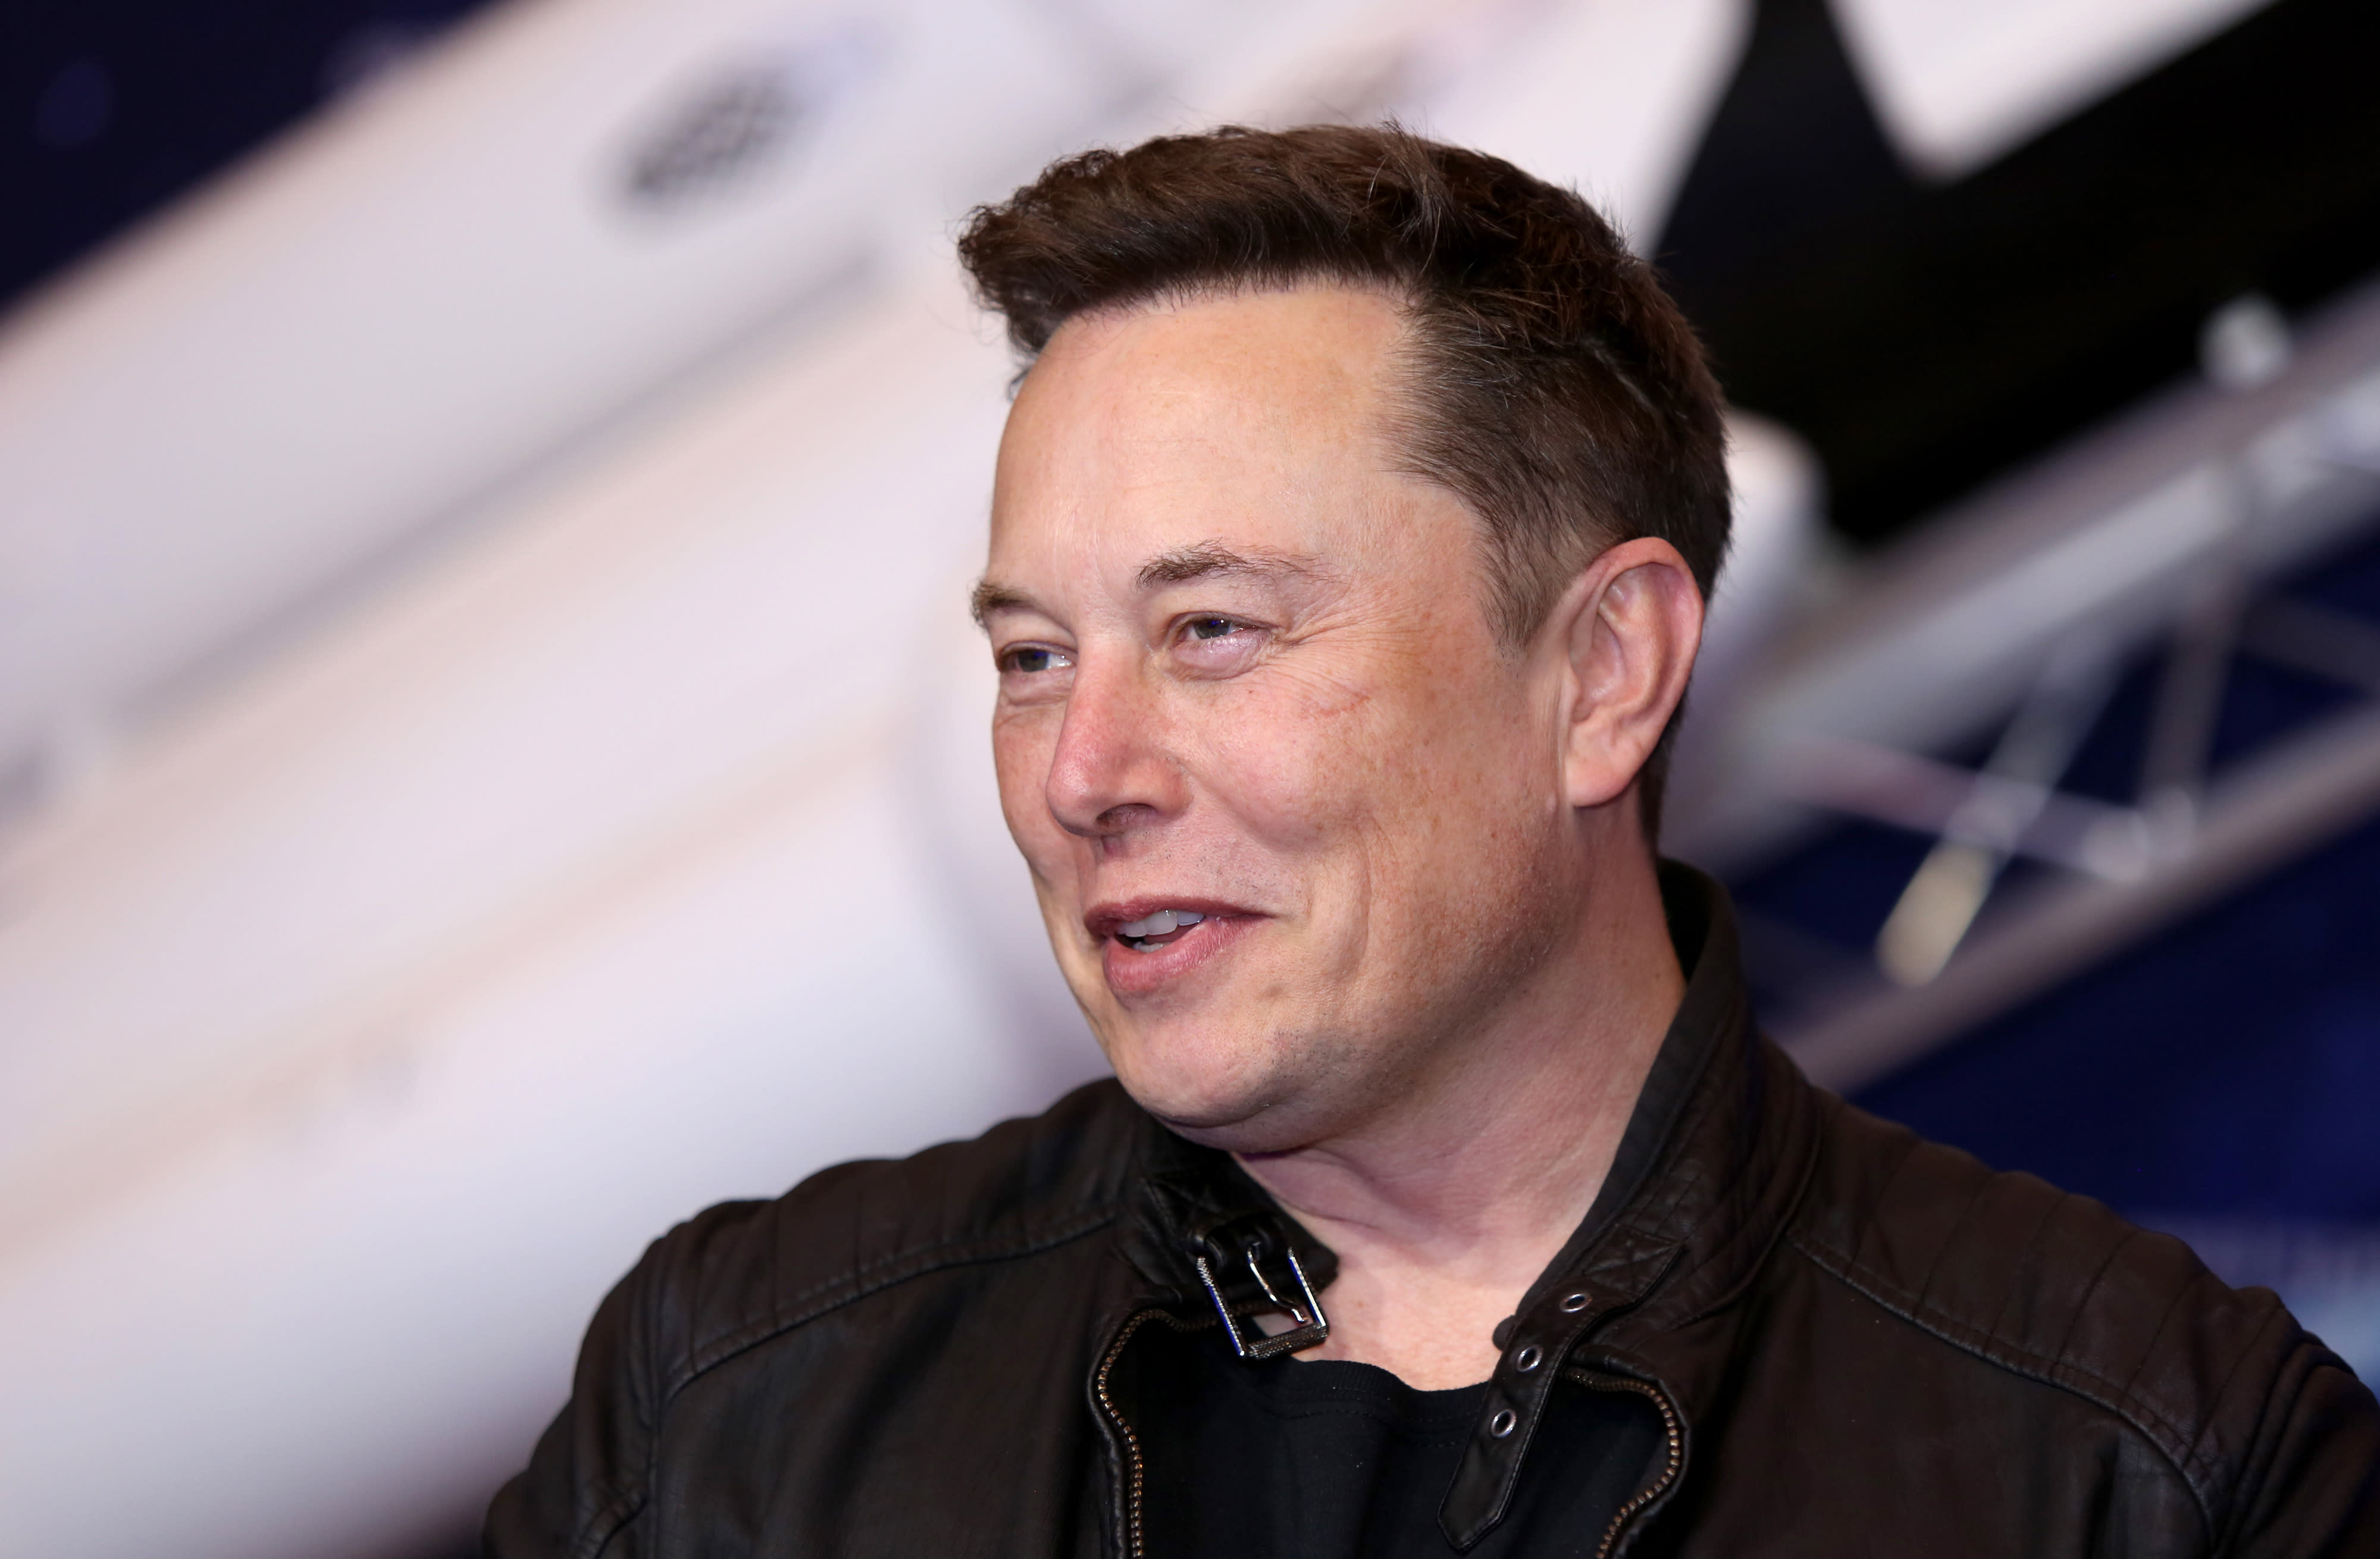 Tesla passes Facebook to become fifth most valuable U.S. company